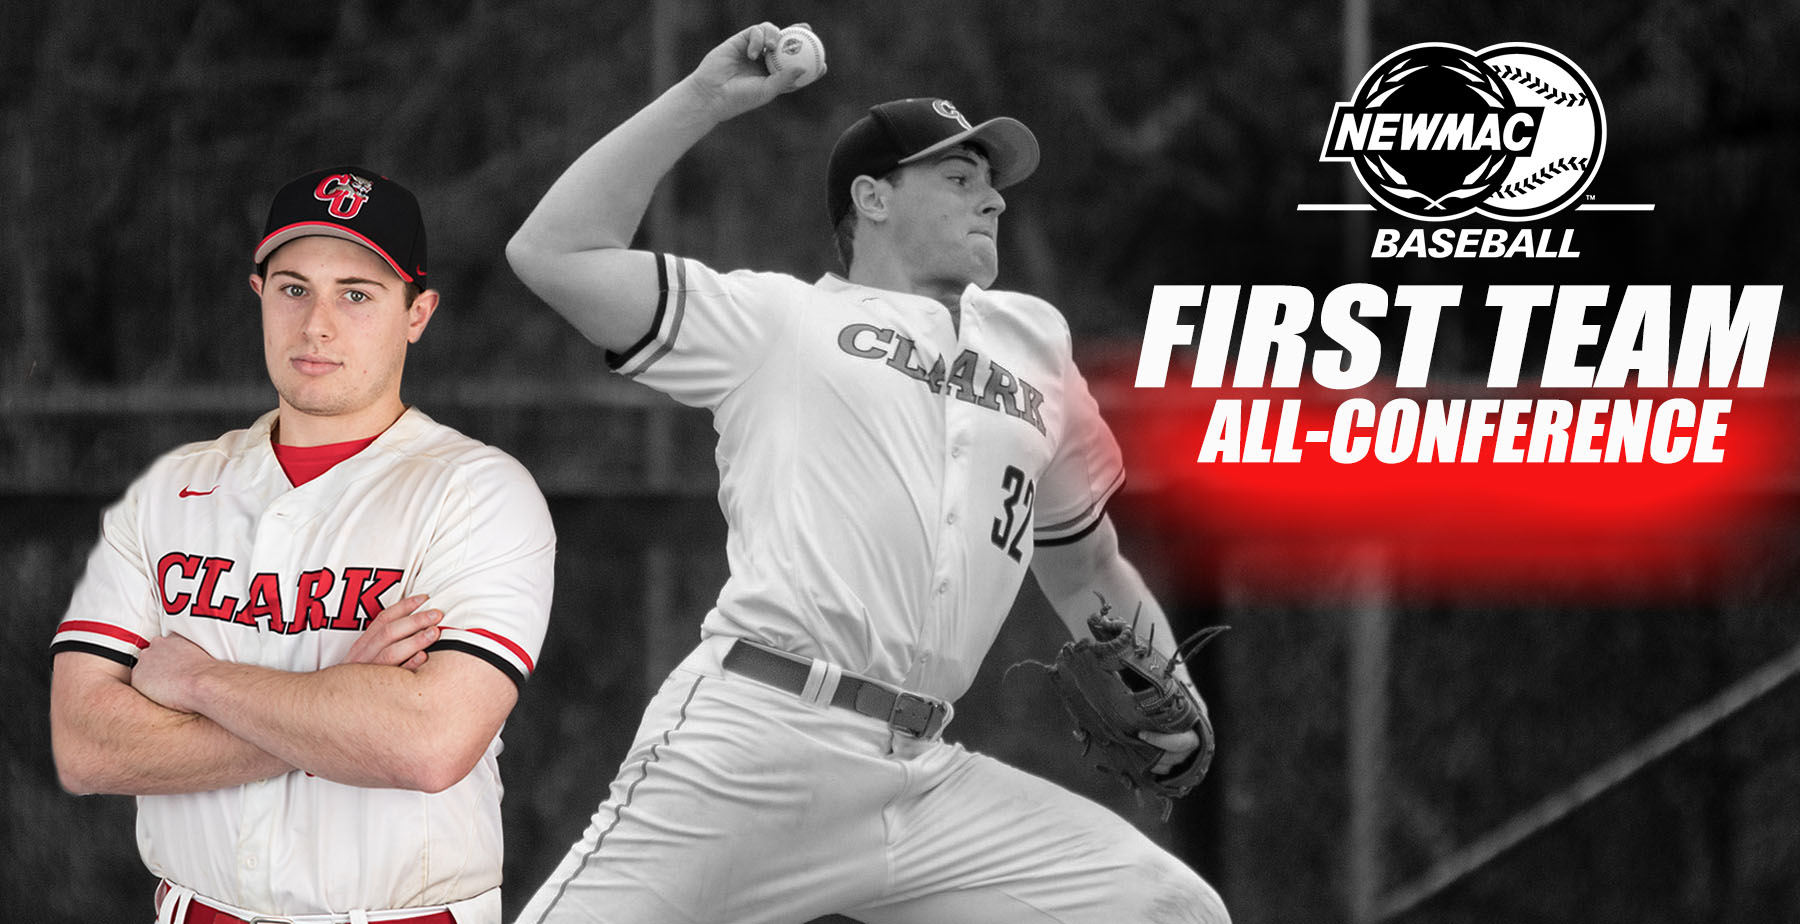 Slepkow Named to 2019 NEWMAC Baseball All-Conference First Team